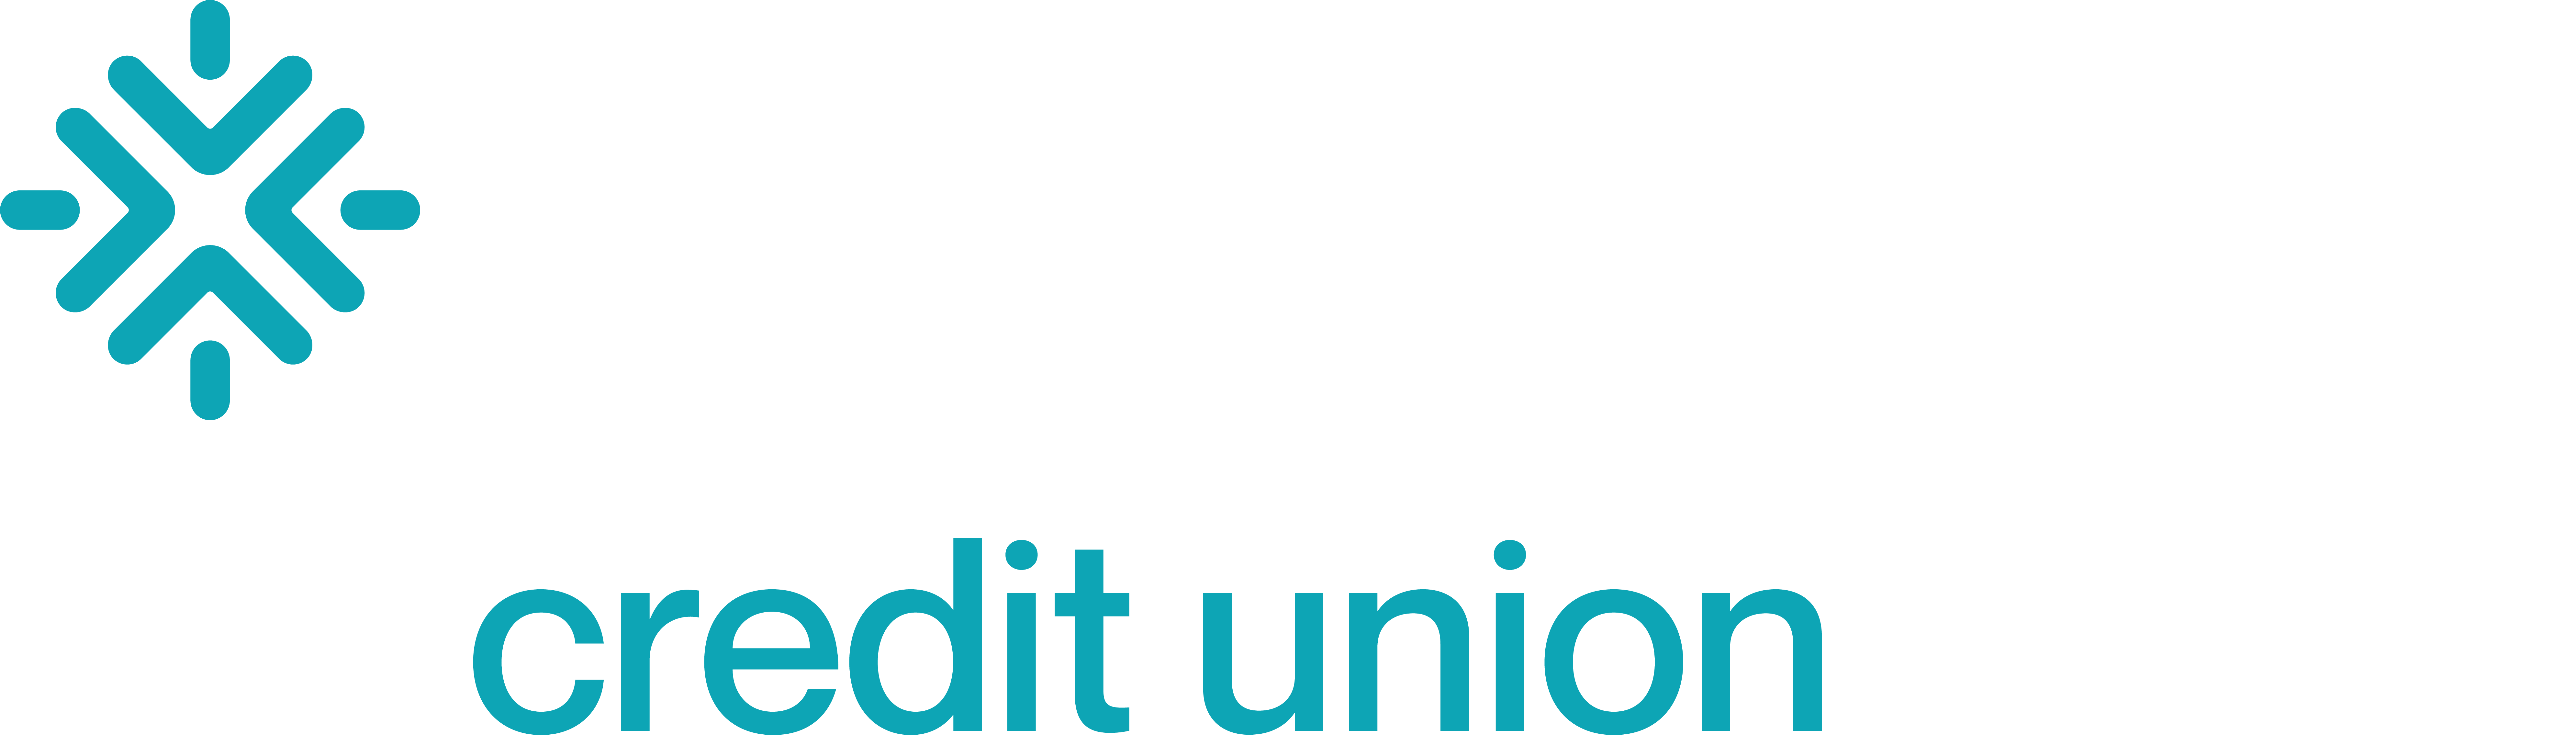 Connect First Credit Union Digital Explorer